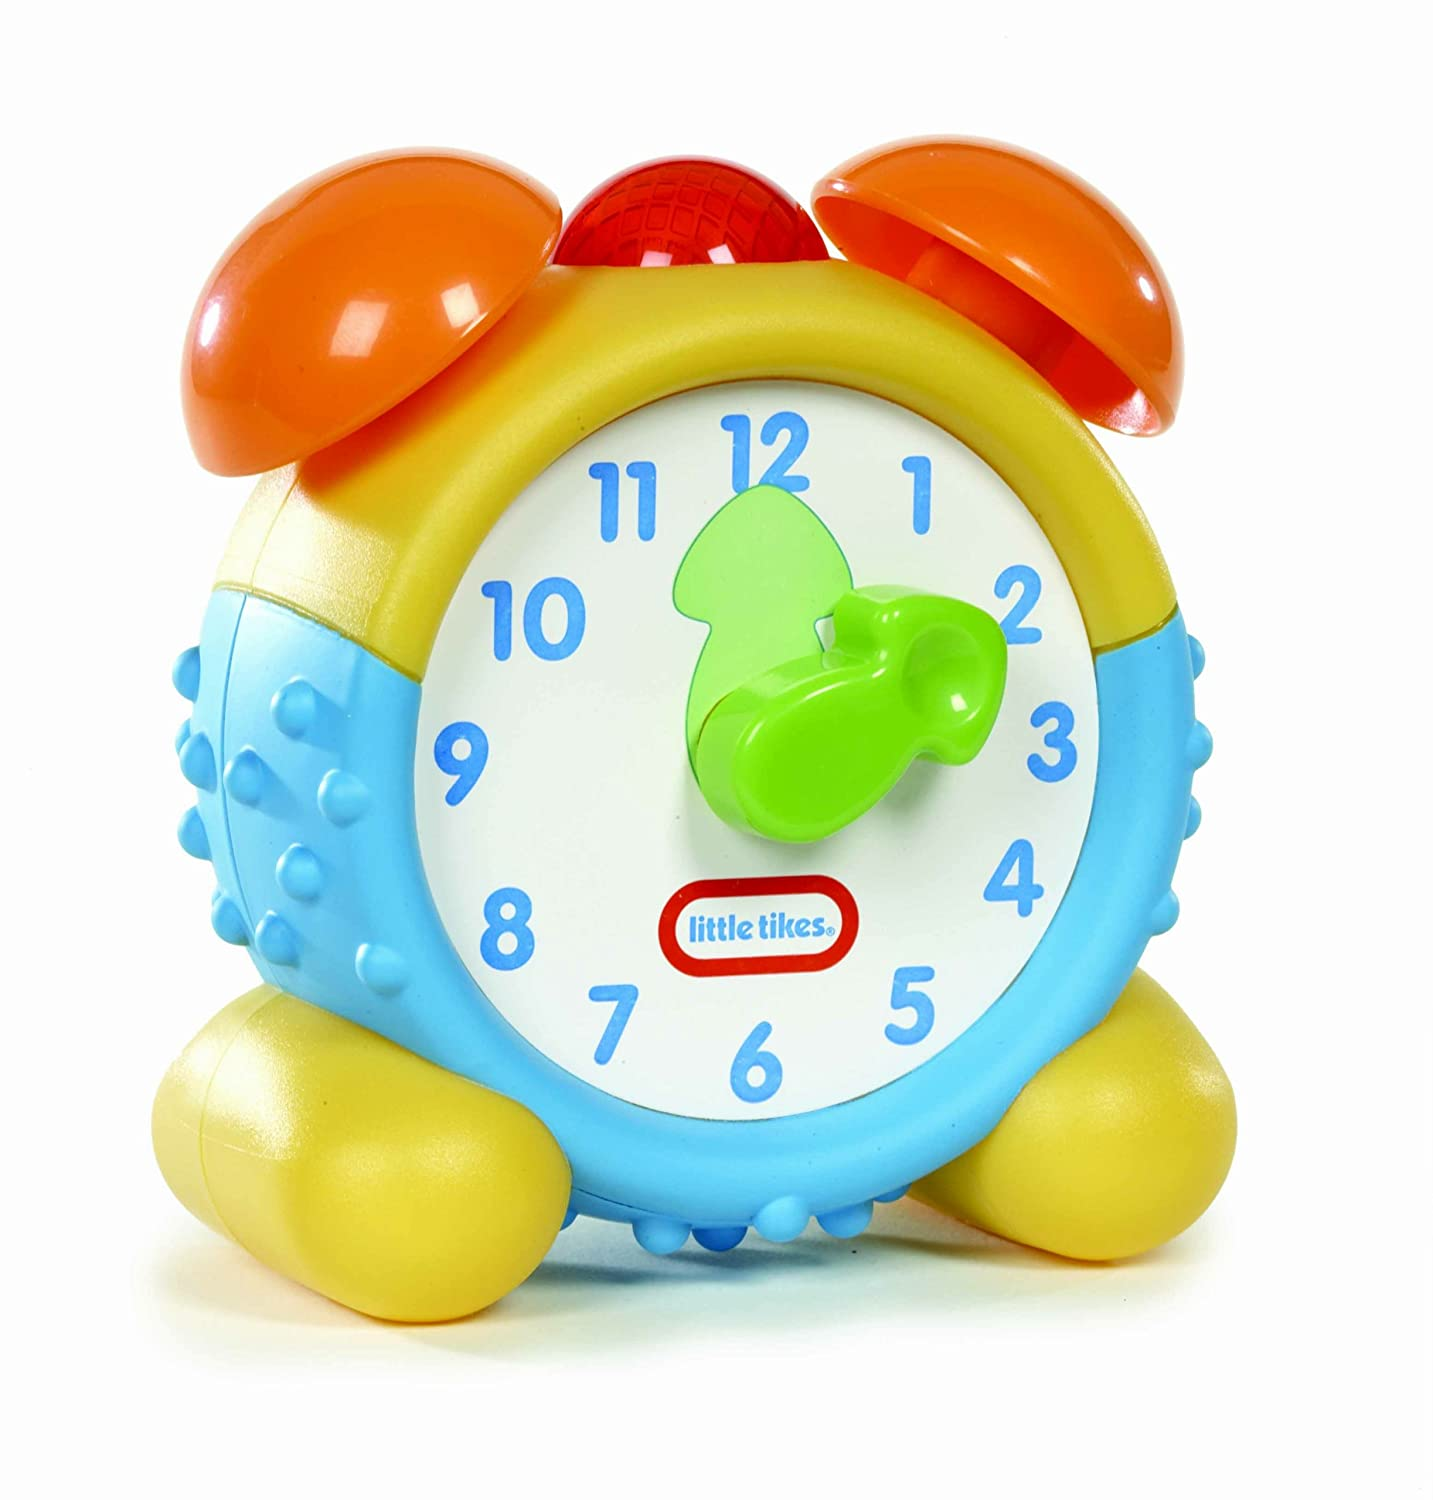 Little Tikes Sound Alarm Clock Amazon Toys & Games